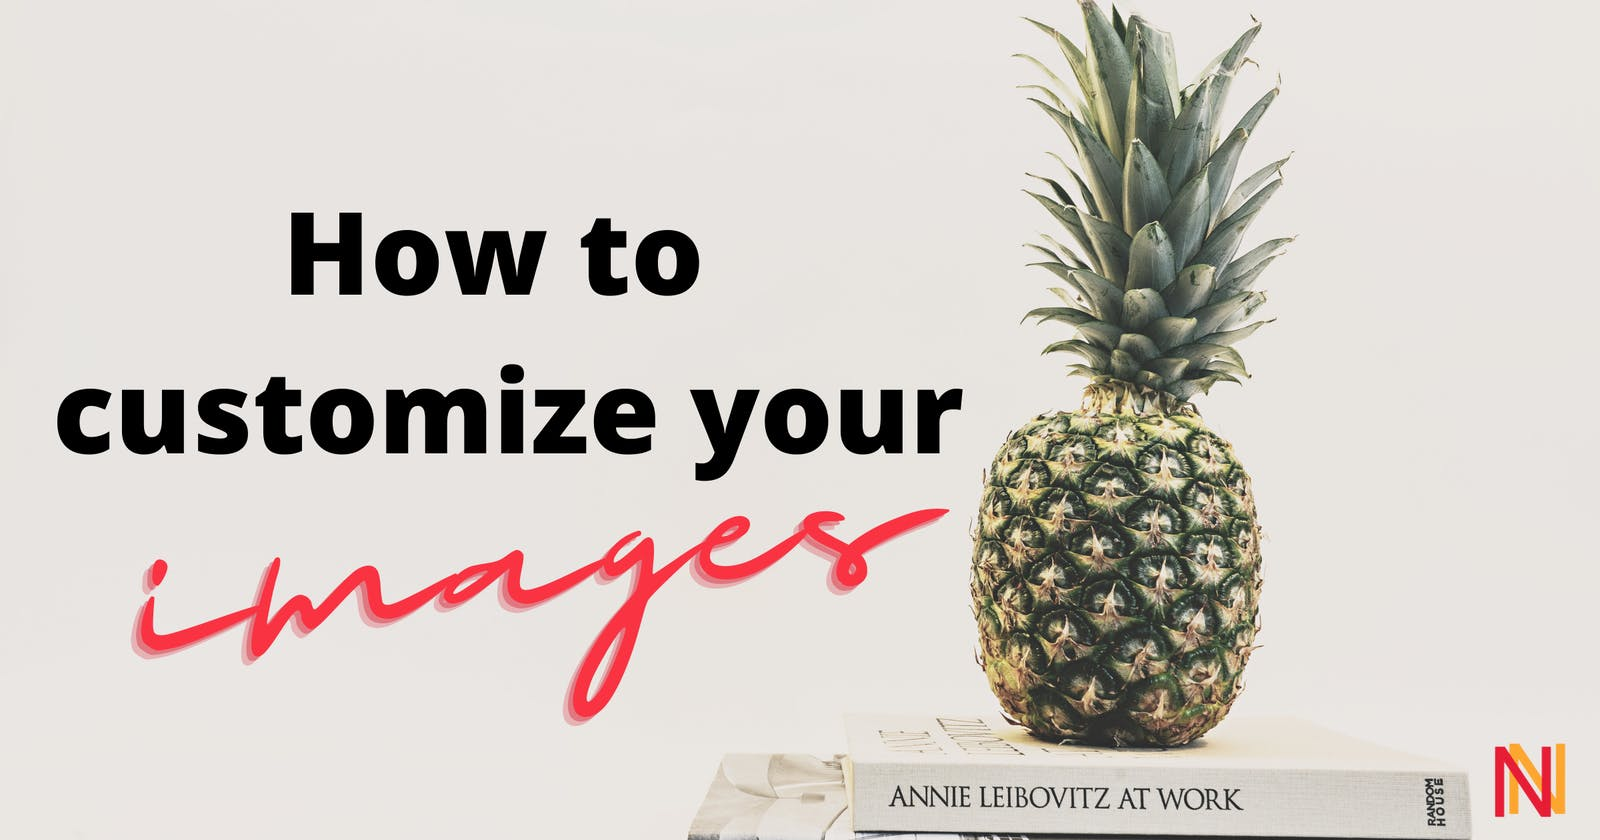 Branding #1 - How to customize your images?